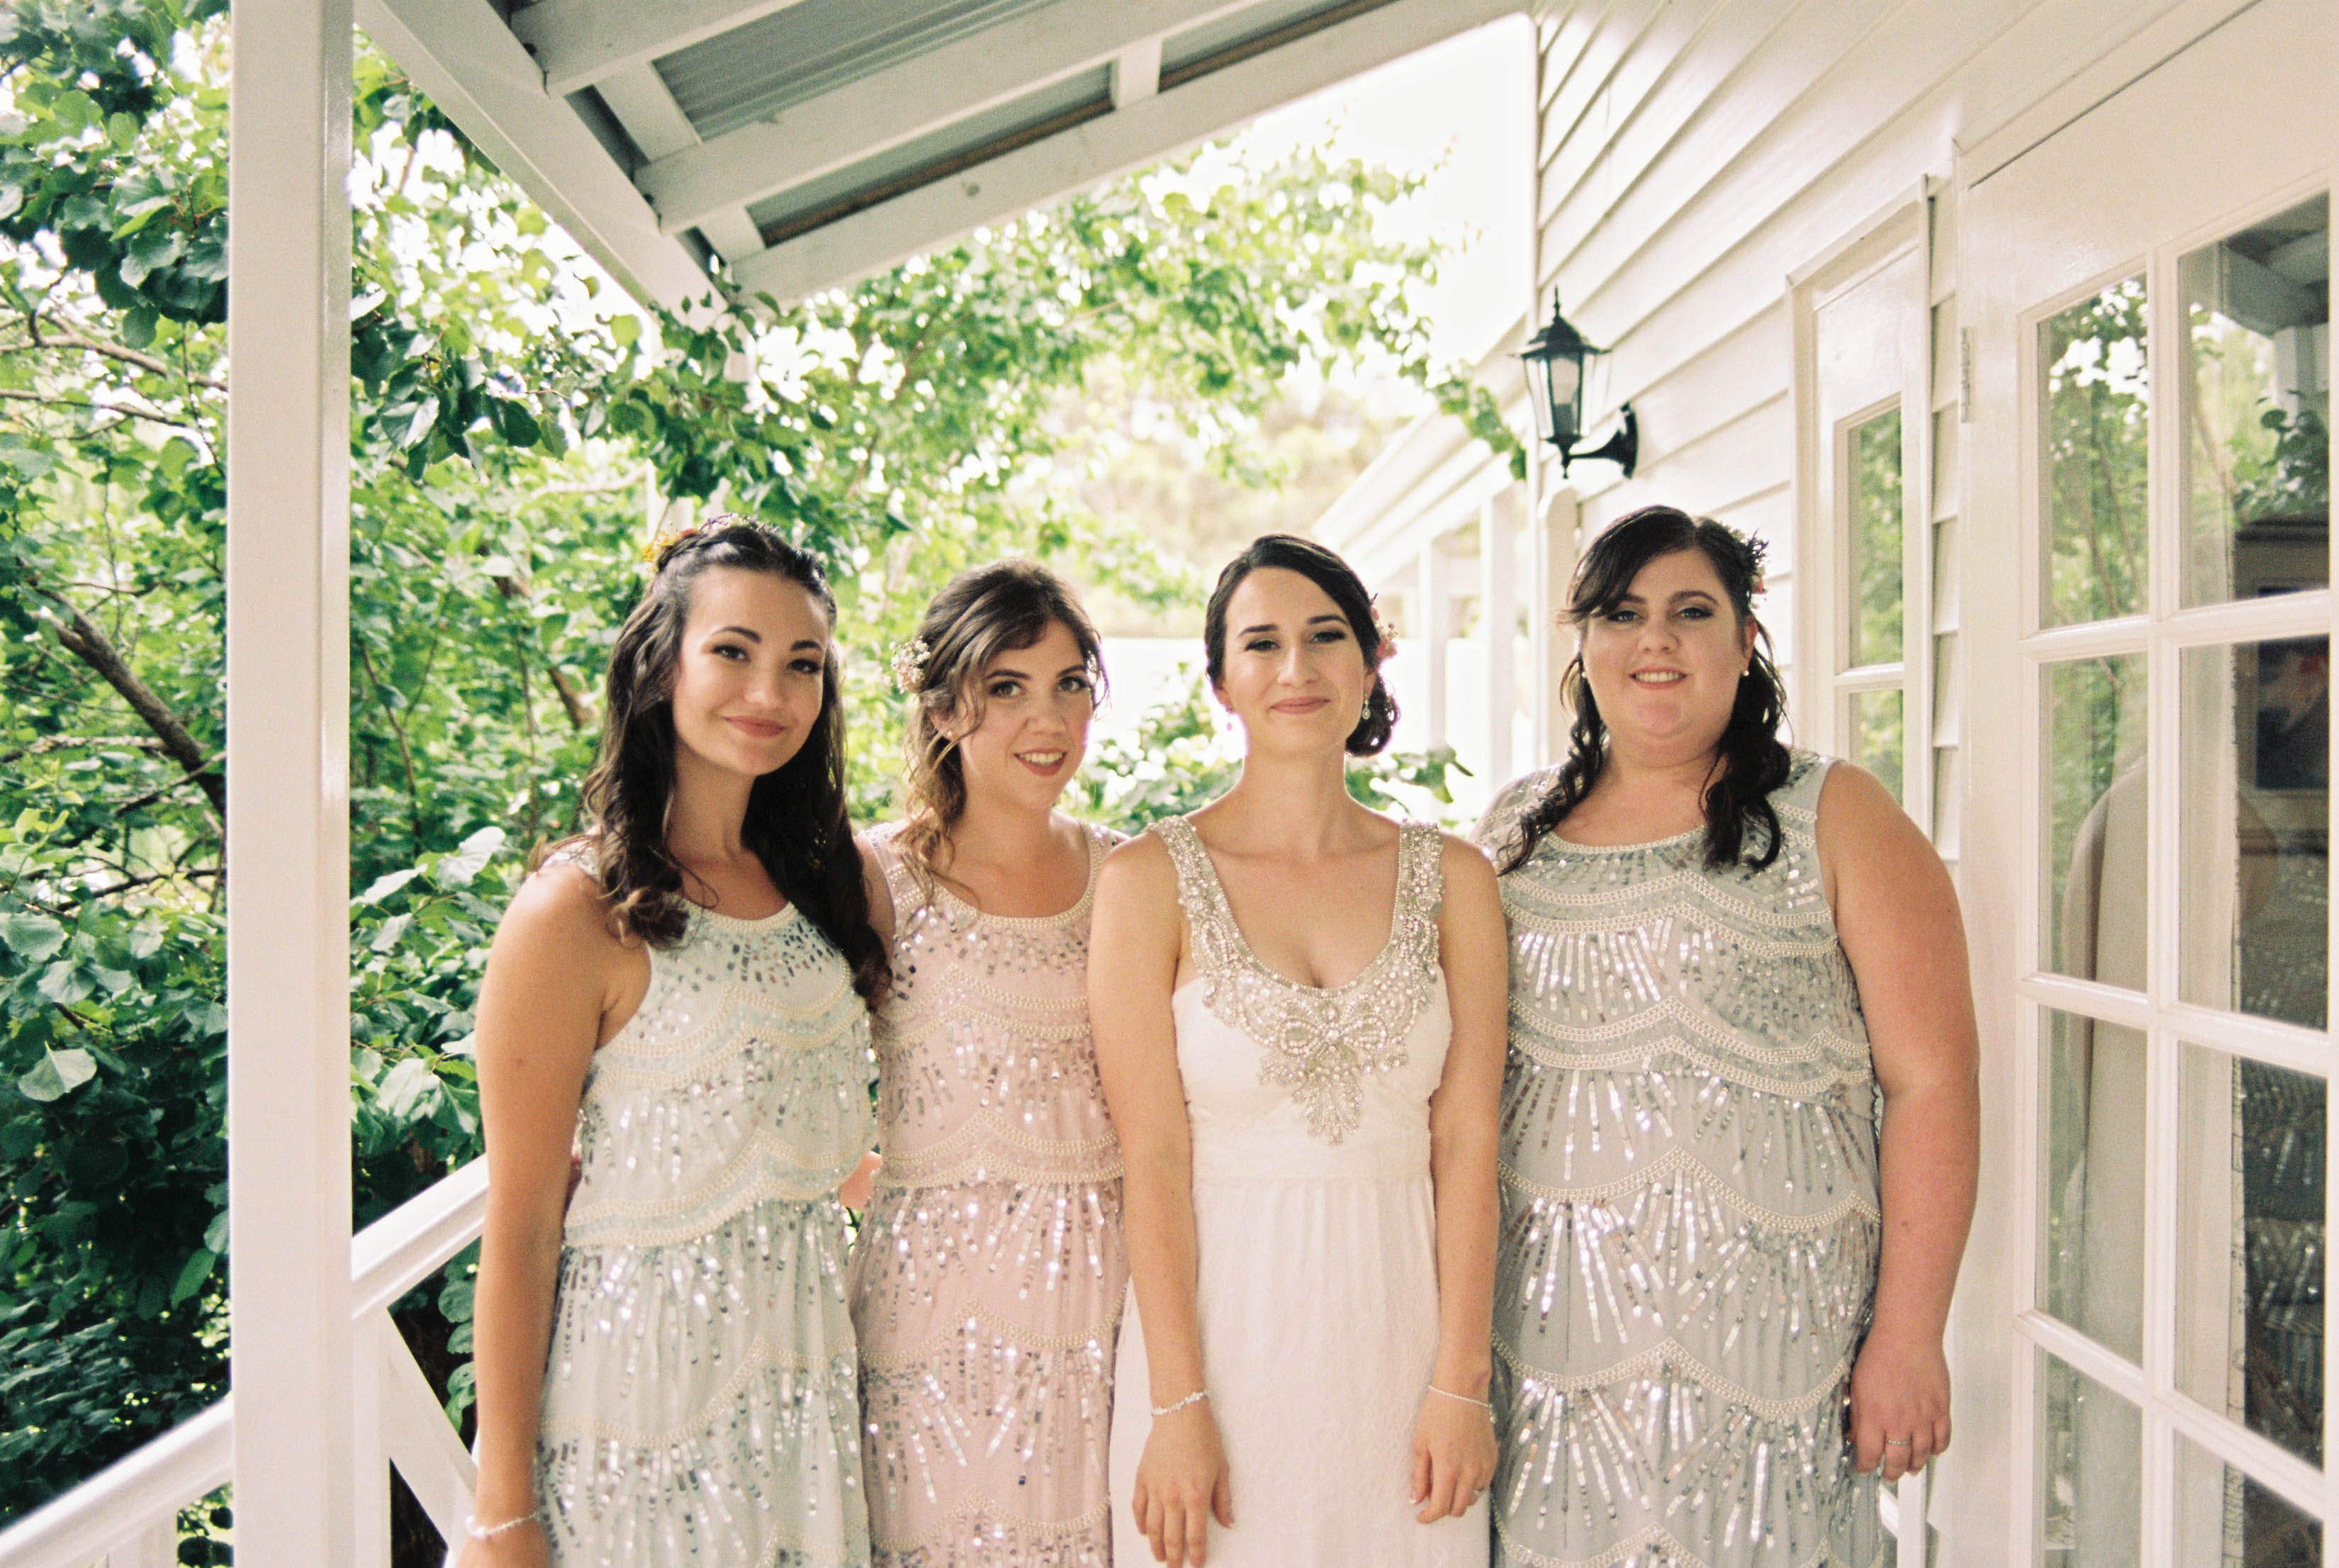 A photo of the bride and her bridesmaids the morning of her South West Destination Wedding taken by Rhianna May Italy and Australia Destination Wedding photographer